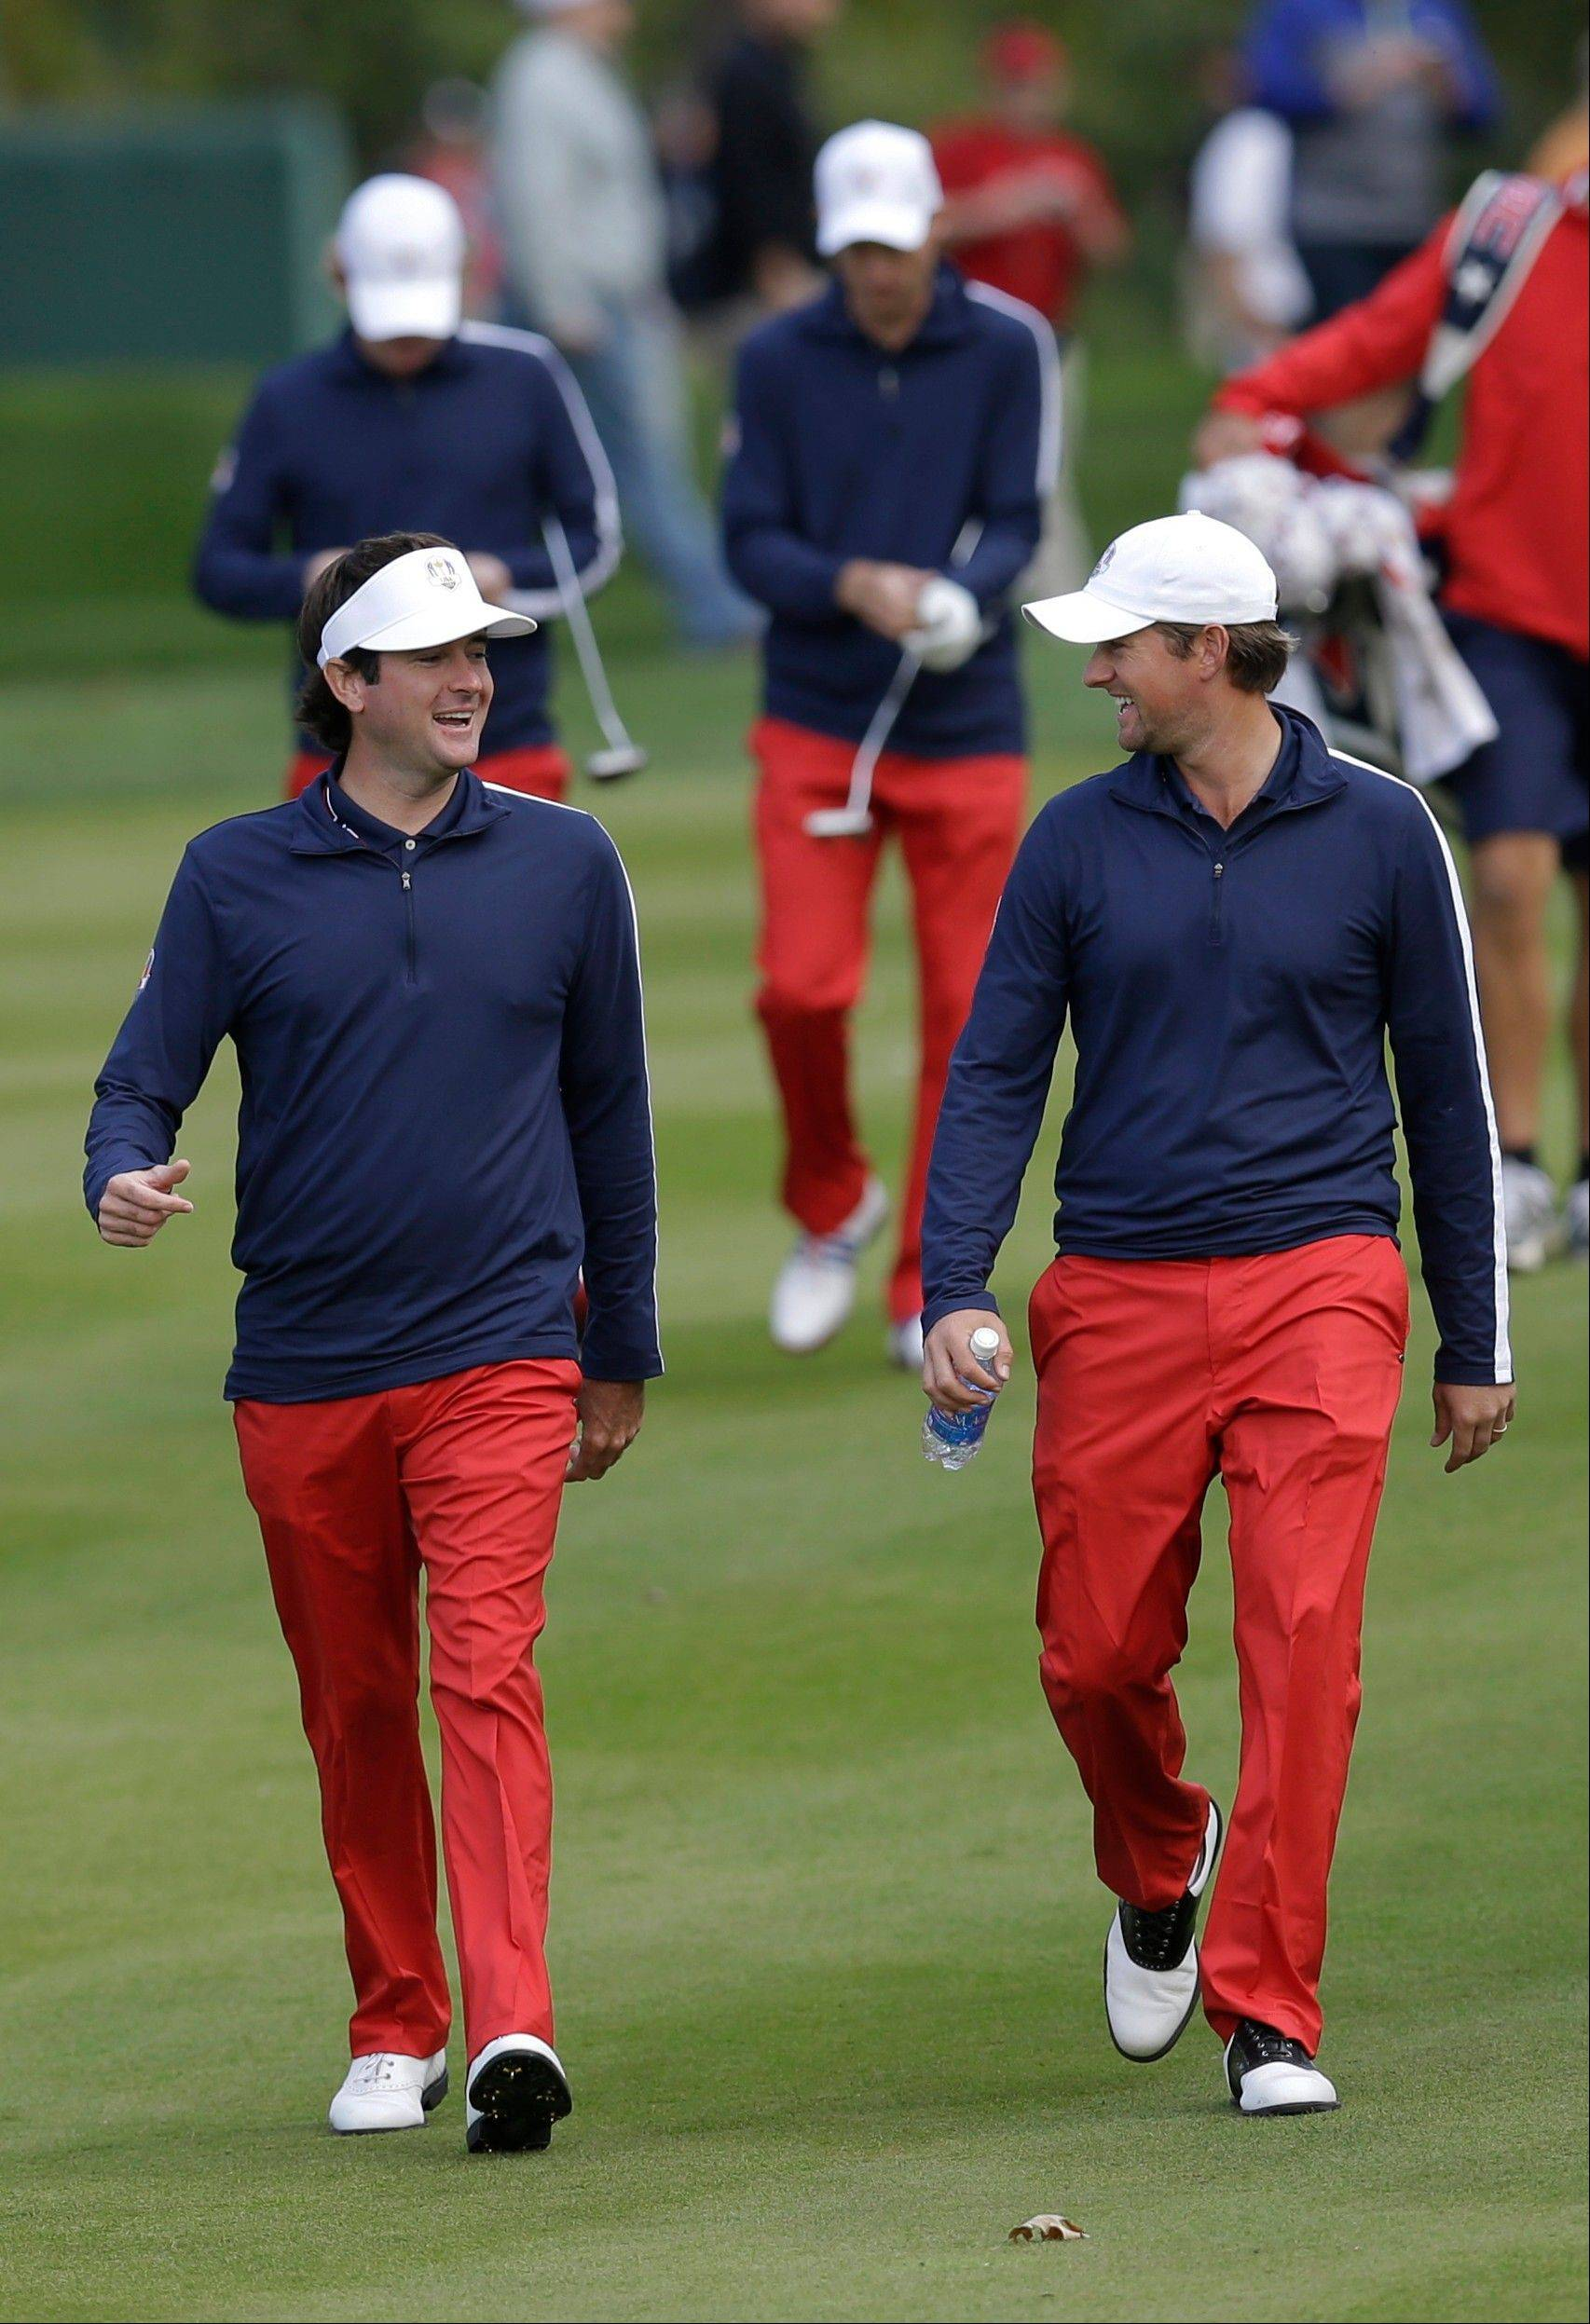 USA's Bubba Watson, left, and Webb Simpson have become good friends on and off the course. Watson won the Masters this year, and Simpson won the U.S. Open.